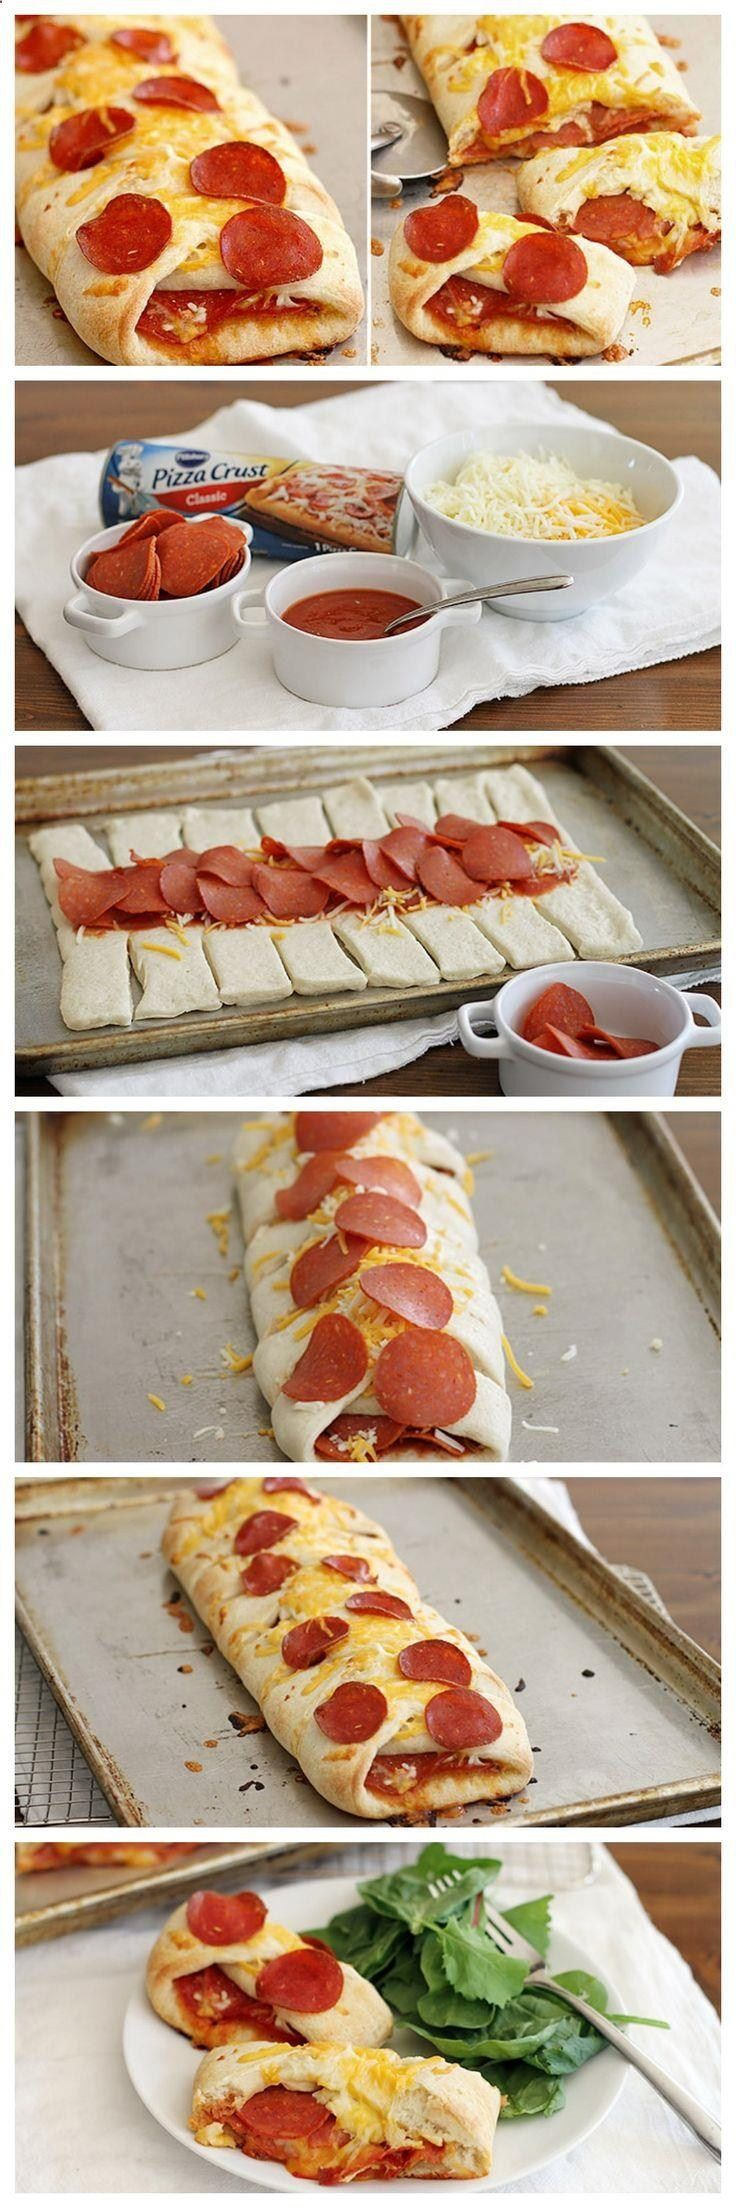 Pepperoni Pizza Braid This delicious Pepperoni Pizza Braid recipe is a wonderful alternative to an old classic. You can fill it with pepperoni or add some Italian Sausage or pepperoncini peppers. It really doesn't matter what you stuff it with, it will bake up perfectly every time. . . . The complete list of ingredients […] Continue reading... The post Pepperoni Pizza Braid appeared first on Olive Oil & Gum Drops . oliveoilandgumdro.....